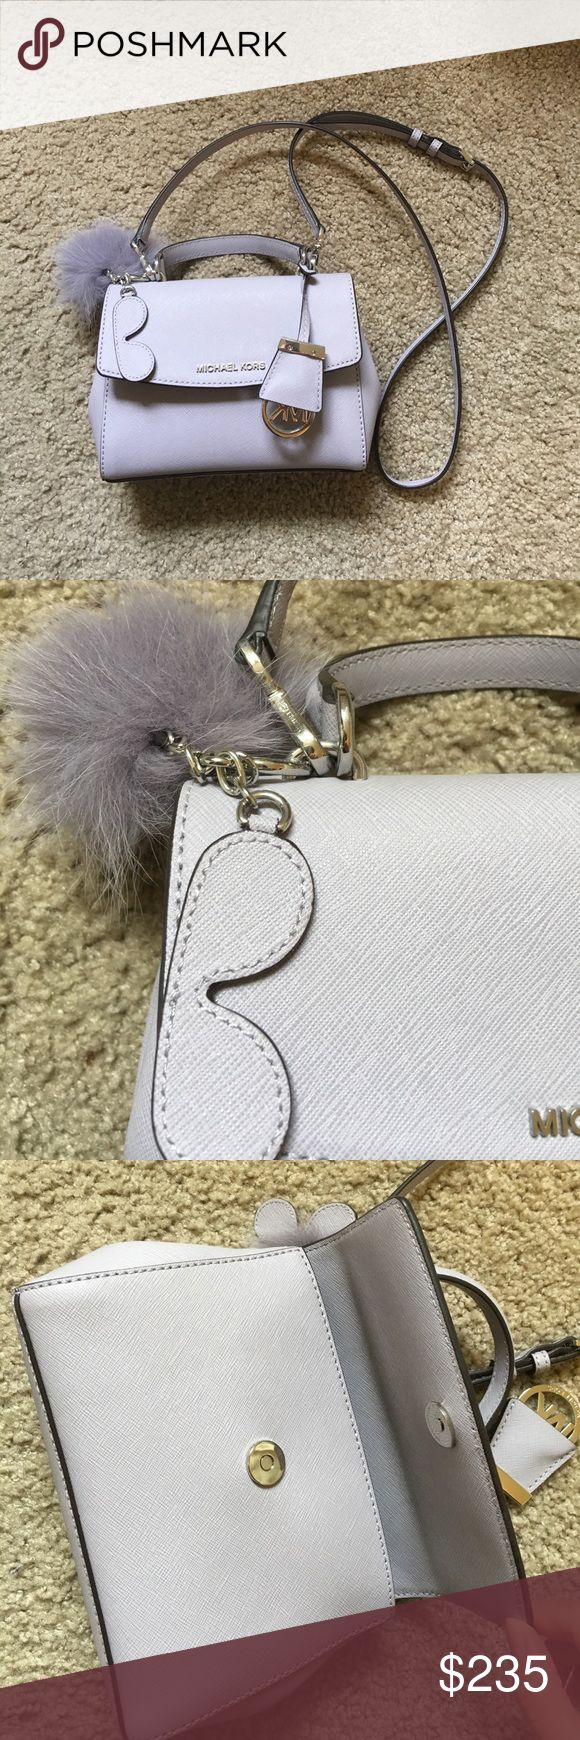 MK nano size bag Cute purple color. Can fit iPhone 7plus. Condition: like new. Come with a MK key chain showed on 2nd picture. Michael Kors Bags Mini Bags